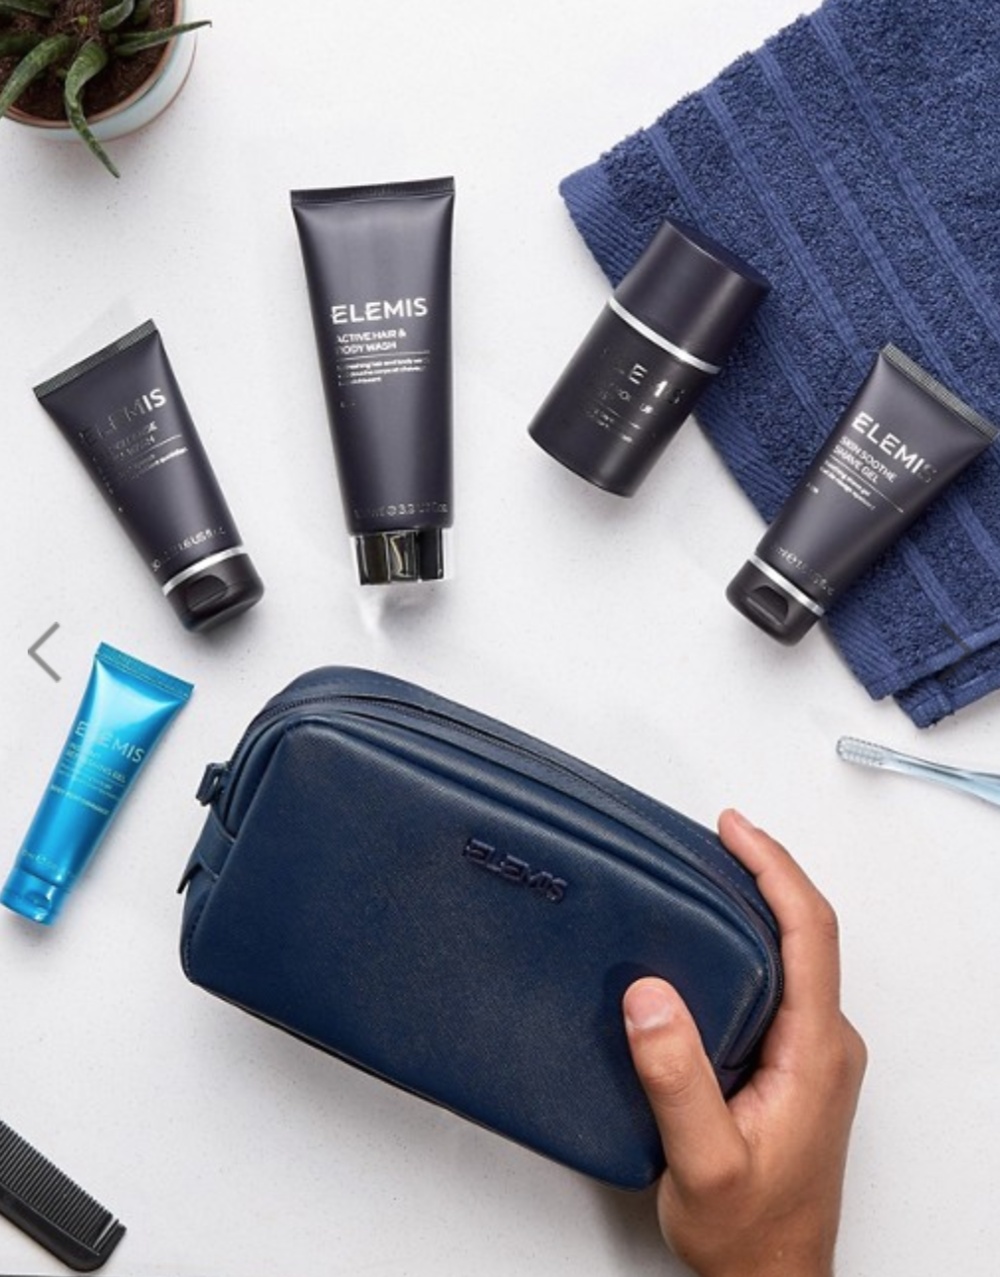 Elemis - The Ultimate Explorer's Travel Kit with 6 Six piece order it via Elemis here